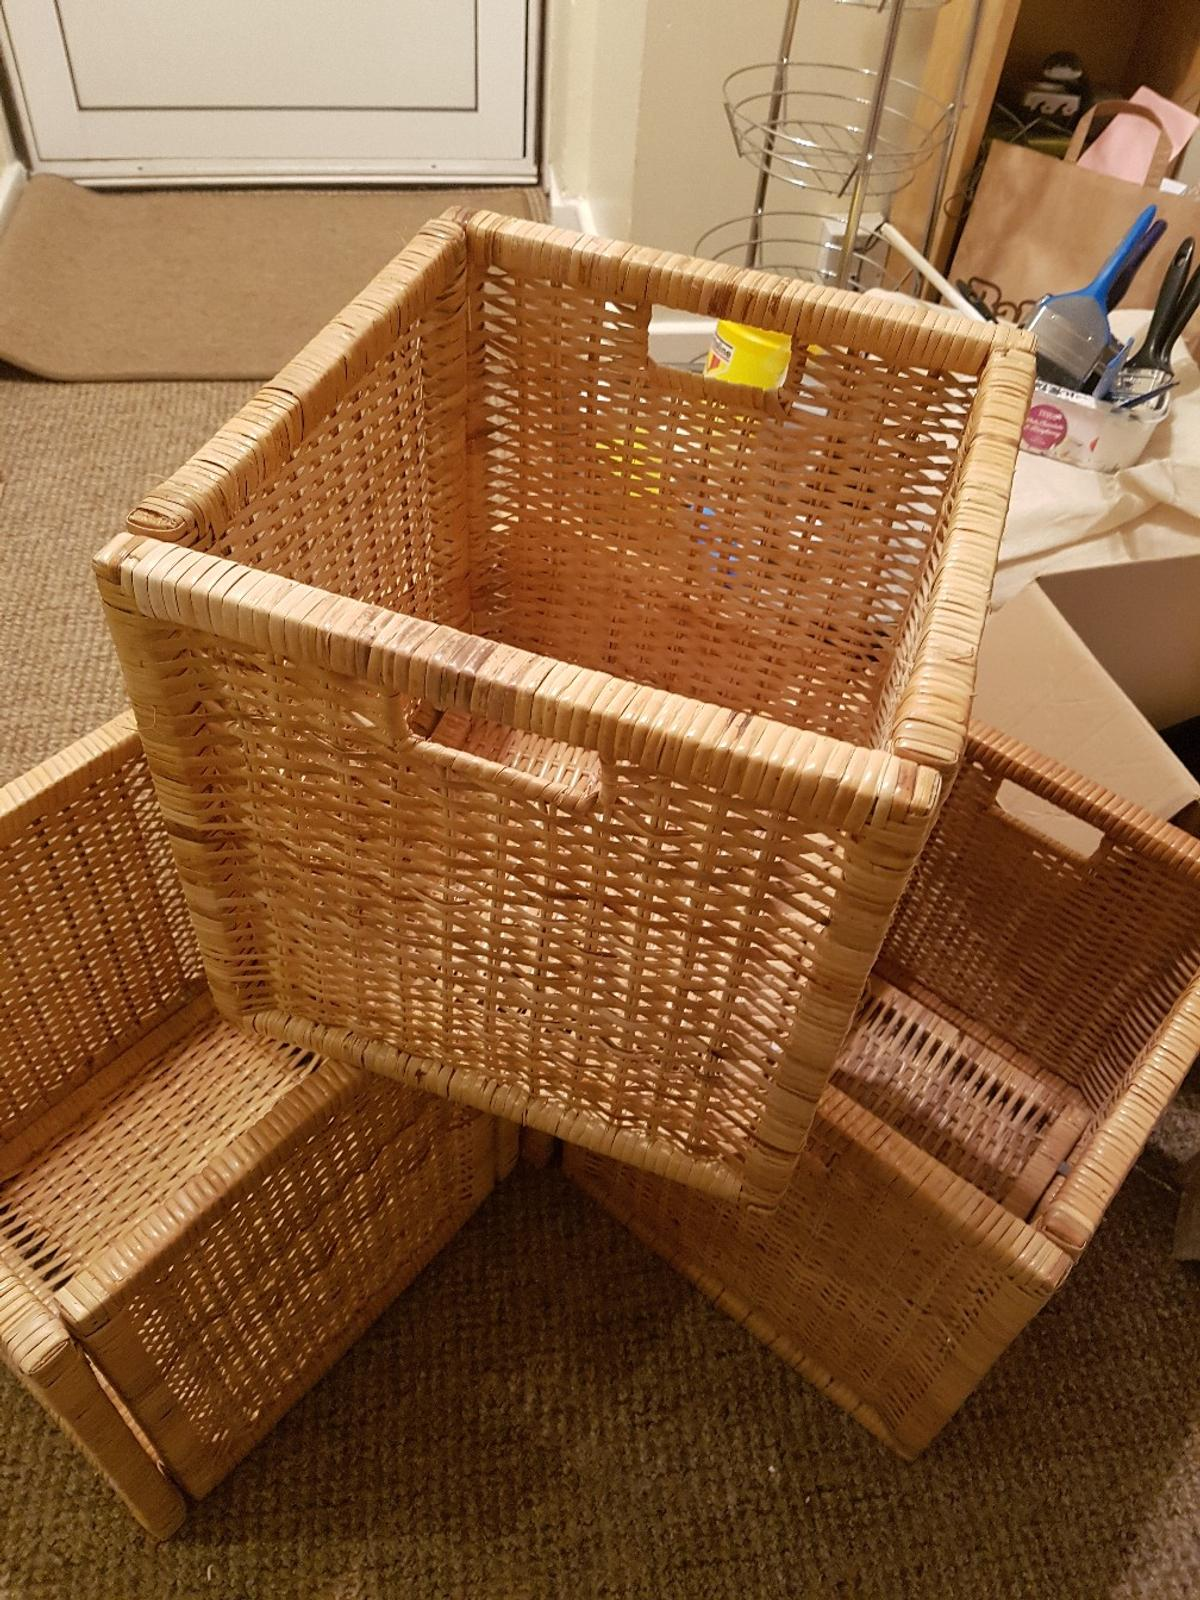 Ikea Expedit Orange 4 X Ikea Kallax Expedit Branas Baskets In Wycombe For 20 00 For